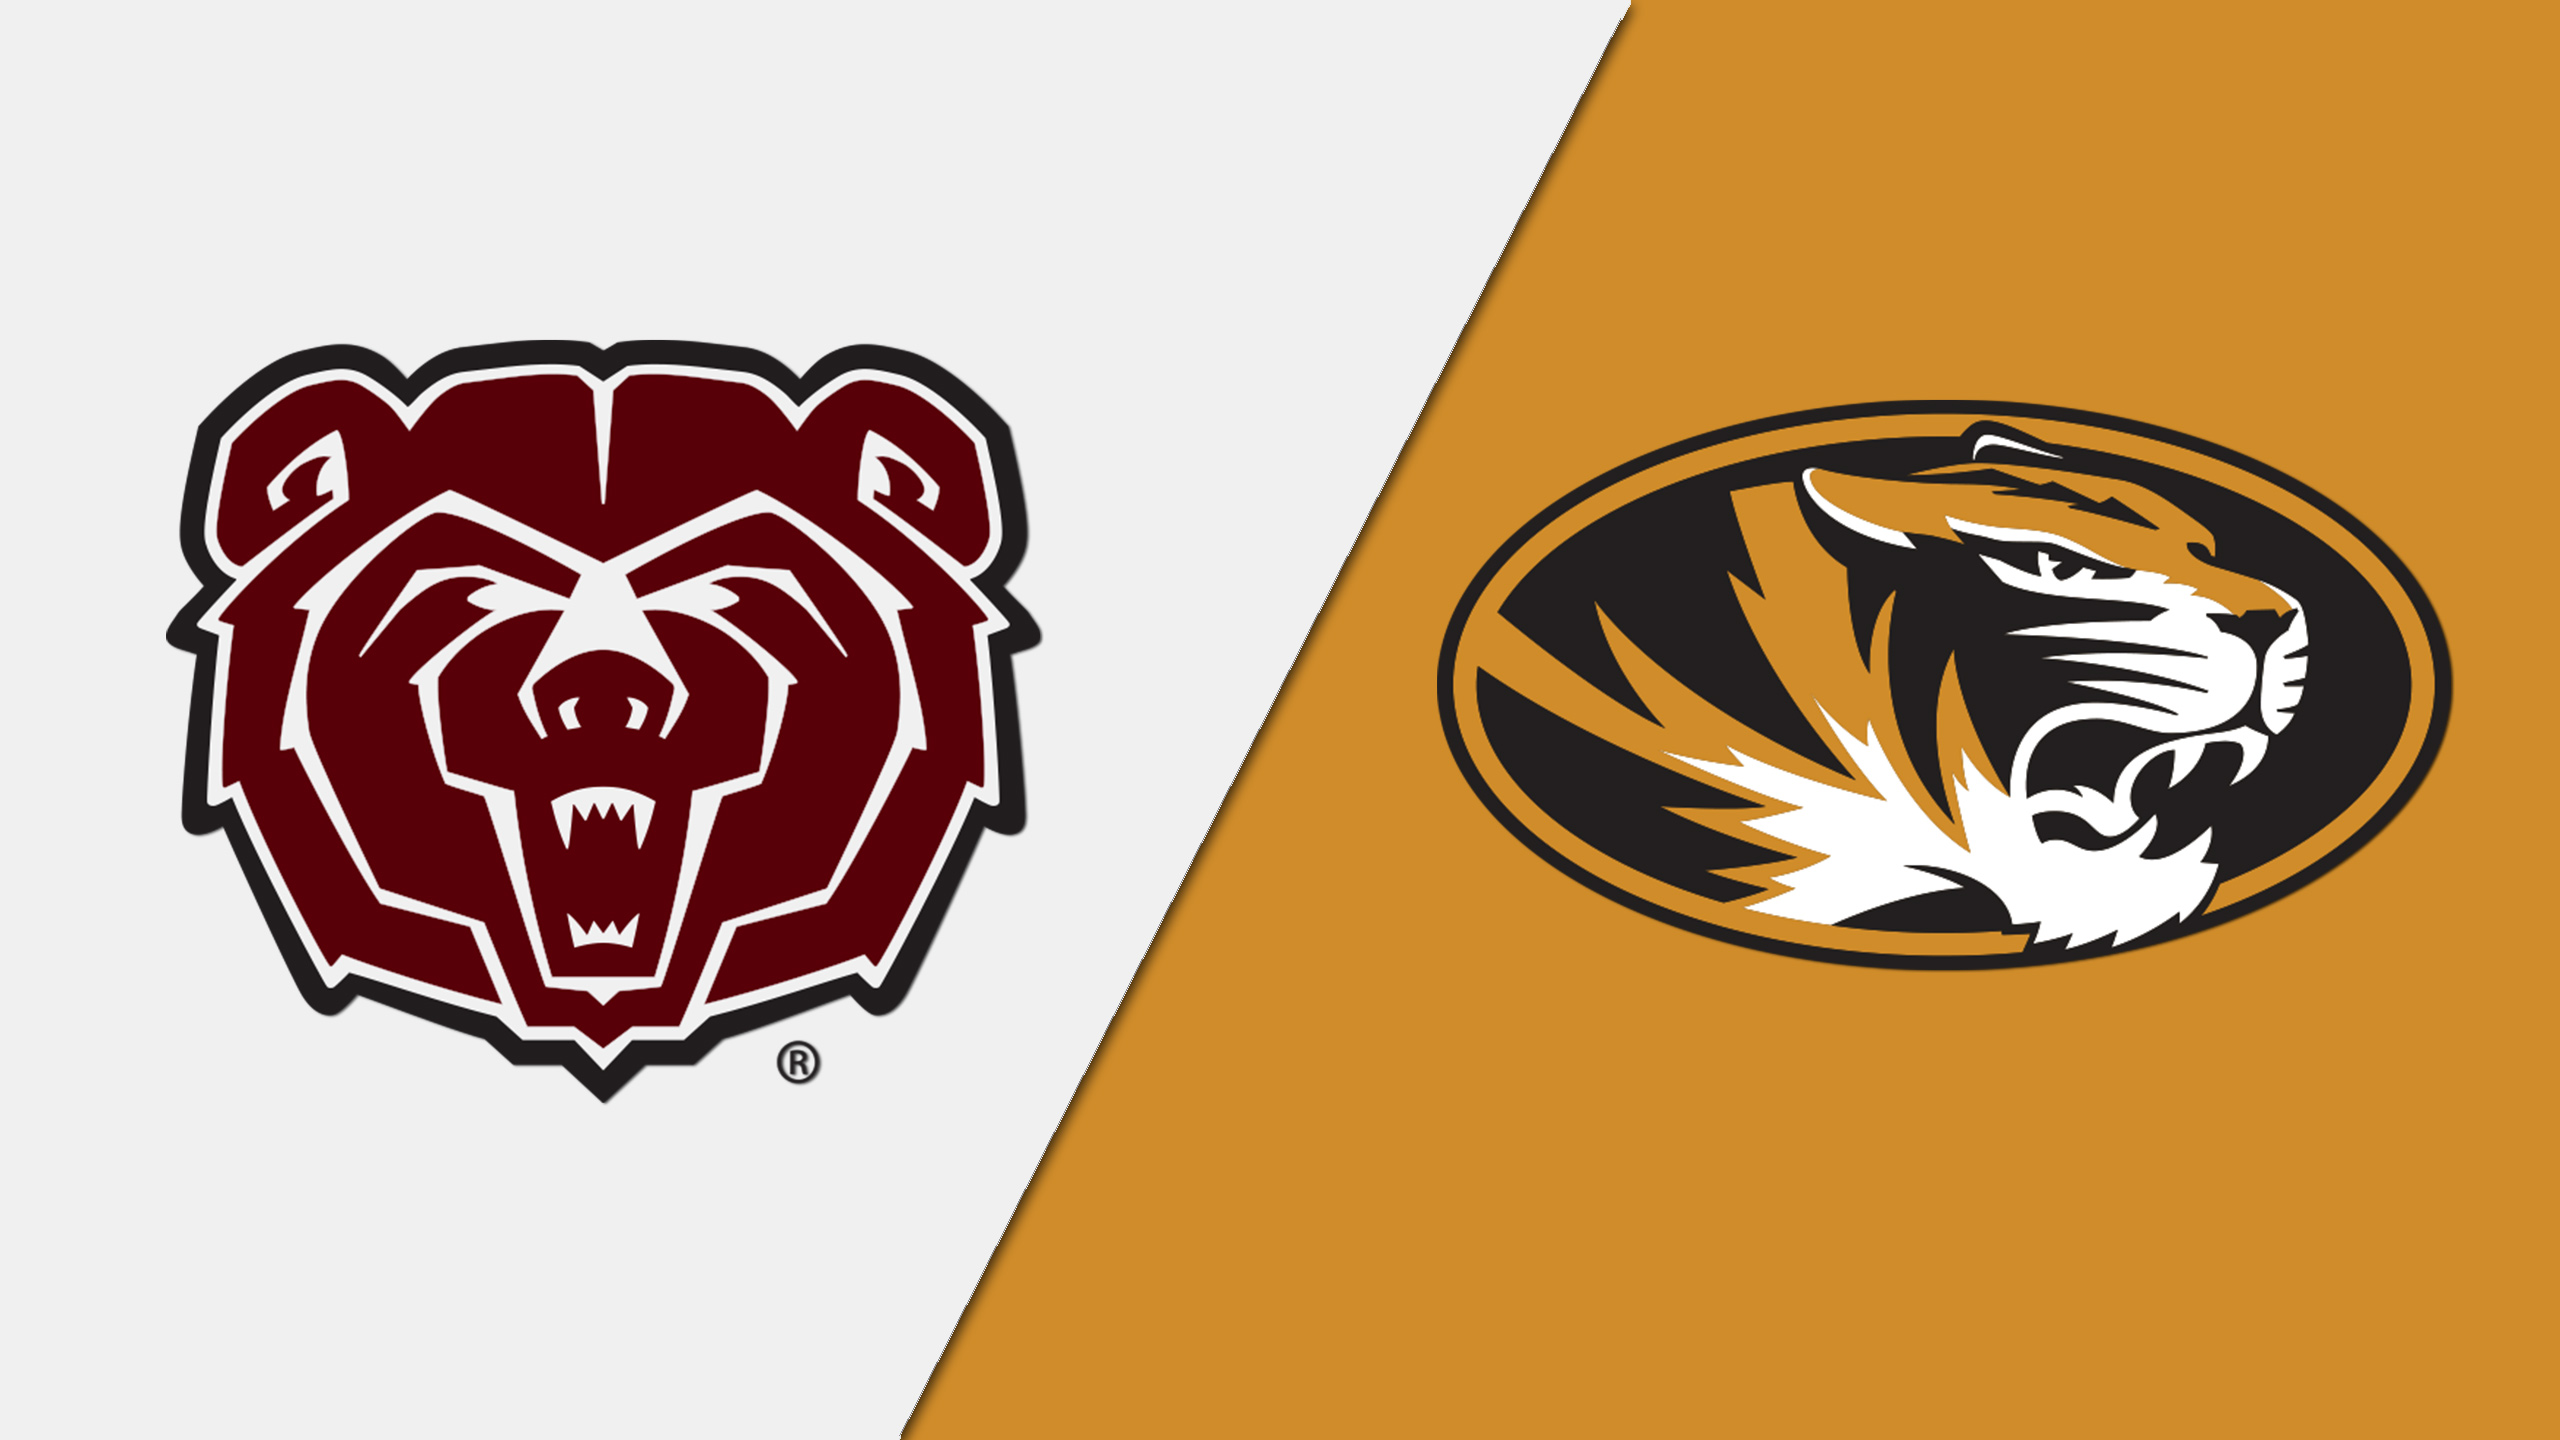 Missouri State vs. #16 Missouri (W Basketball)